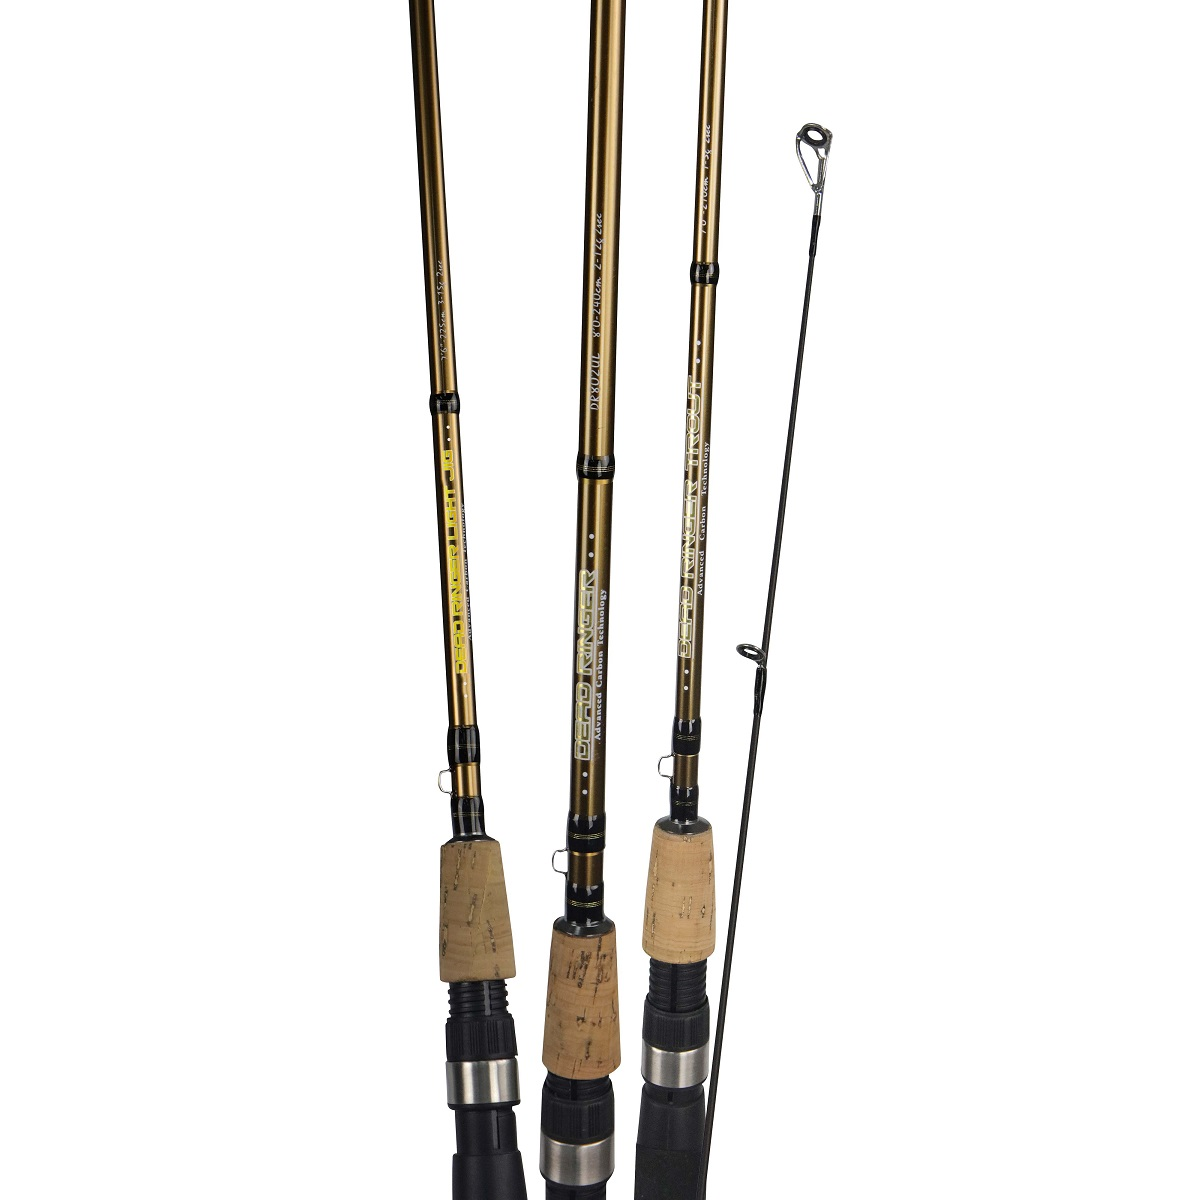 Dead Ringer Rod - Okuma Dead Ringer Rod-Covering all needs of the modern Lure and bait anglers-Light weight 24T carbon Blank construction